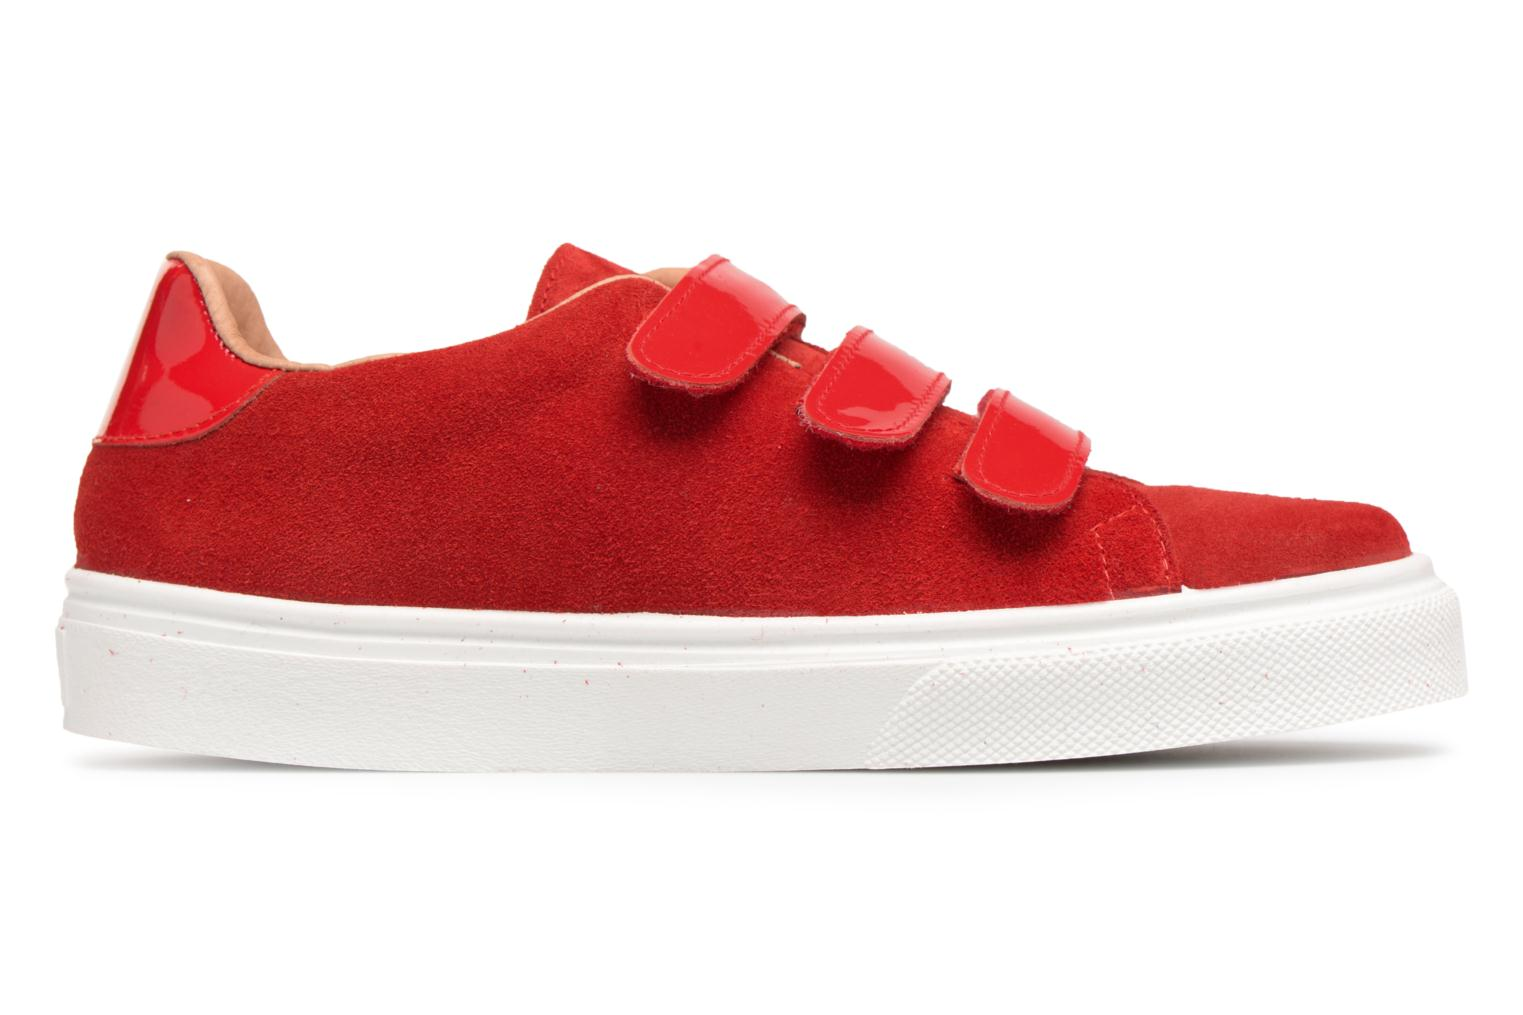 Marques Chaussure femme Made by SARENZA femme Busy Girl Basket #1 Cuir Velours Rouge / Scratch Vernis Rouge